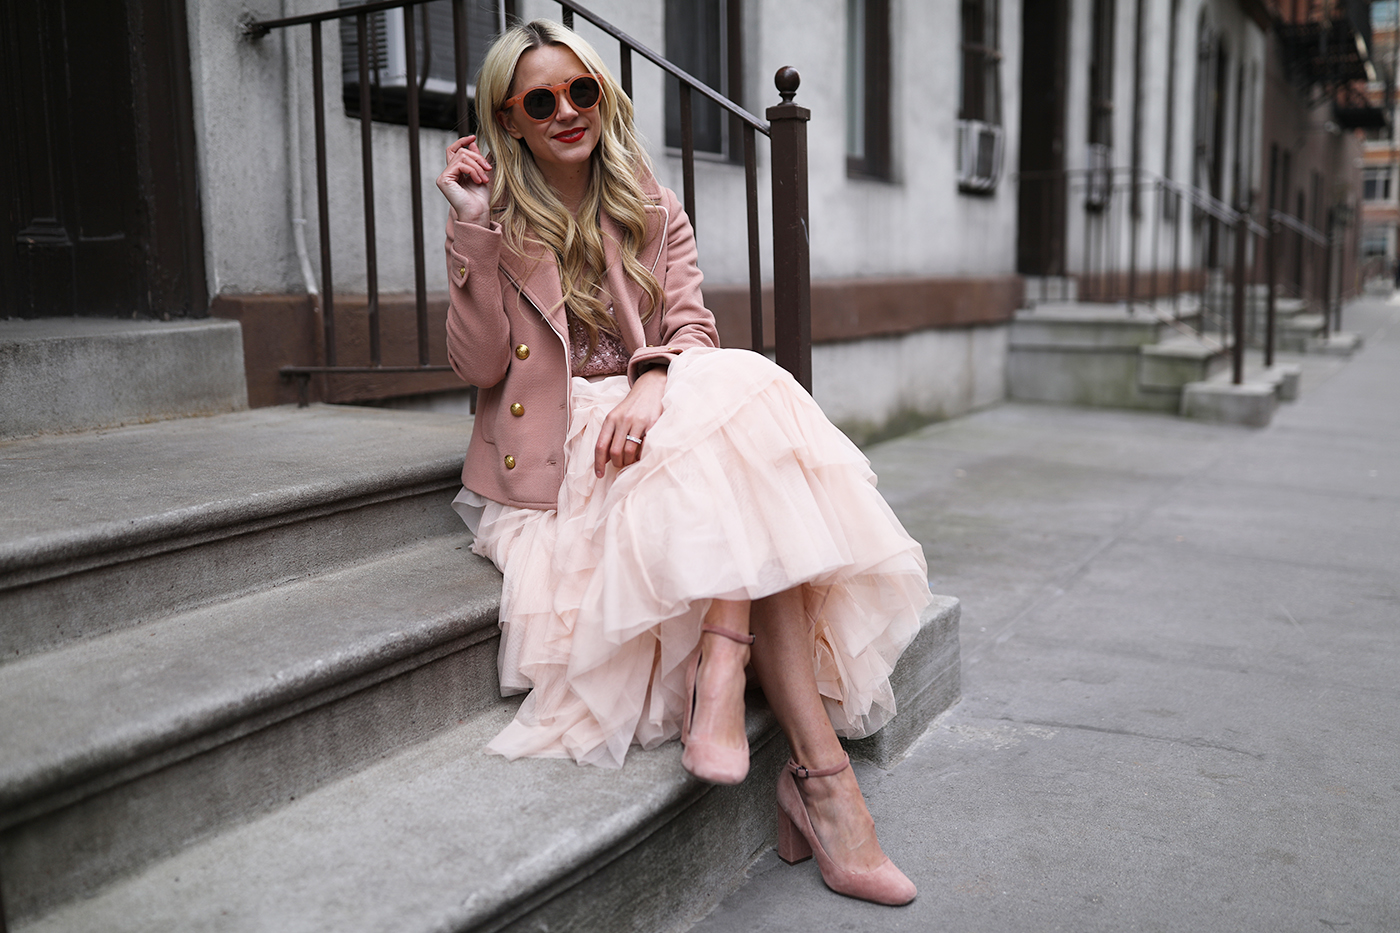 pink-tutu-skirt-atlantic-pacific-fashion-blog-outfit-nyc